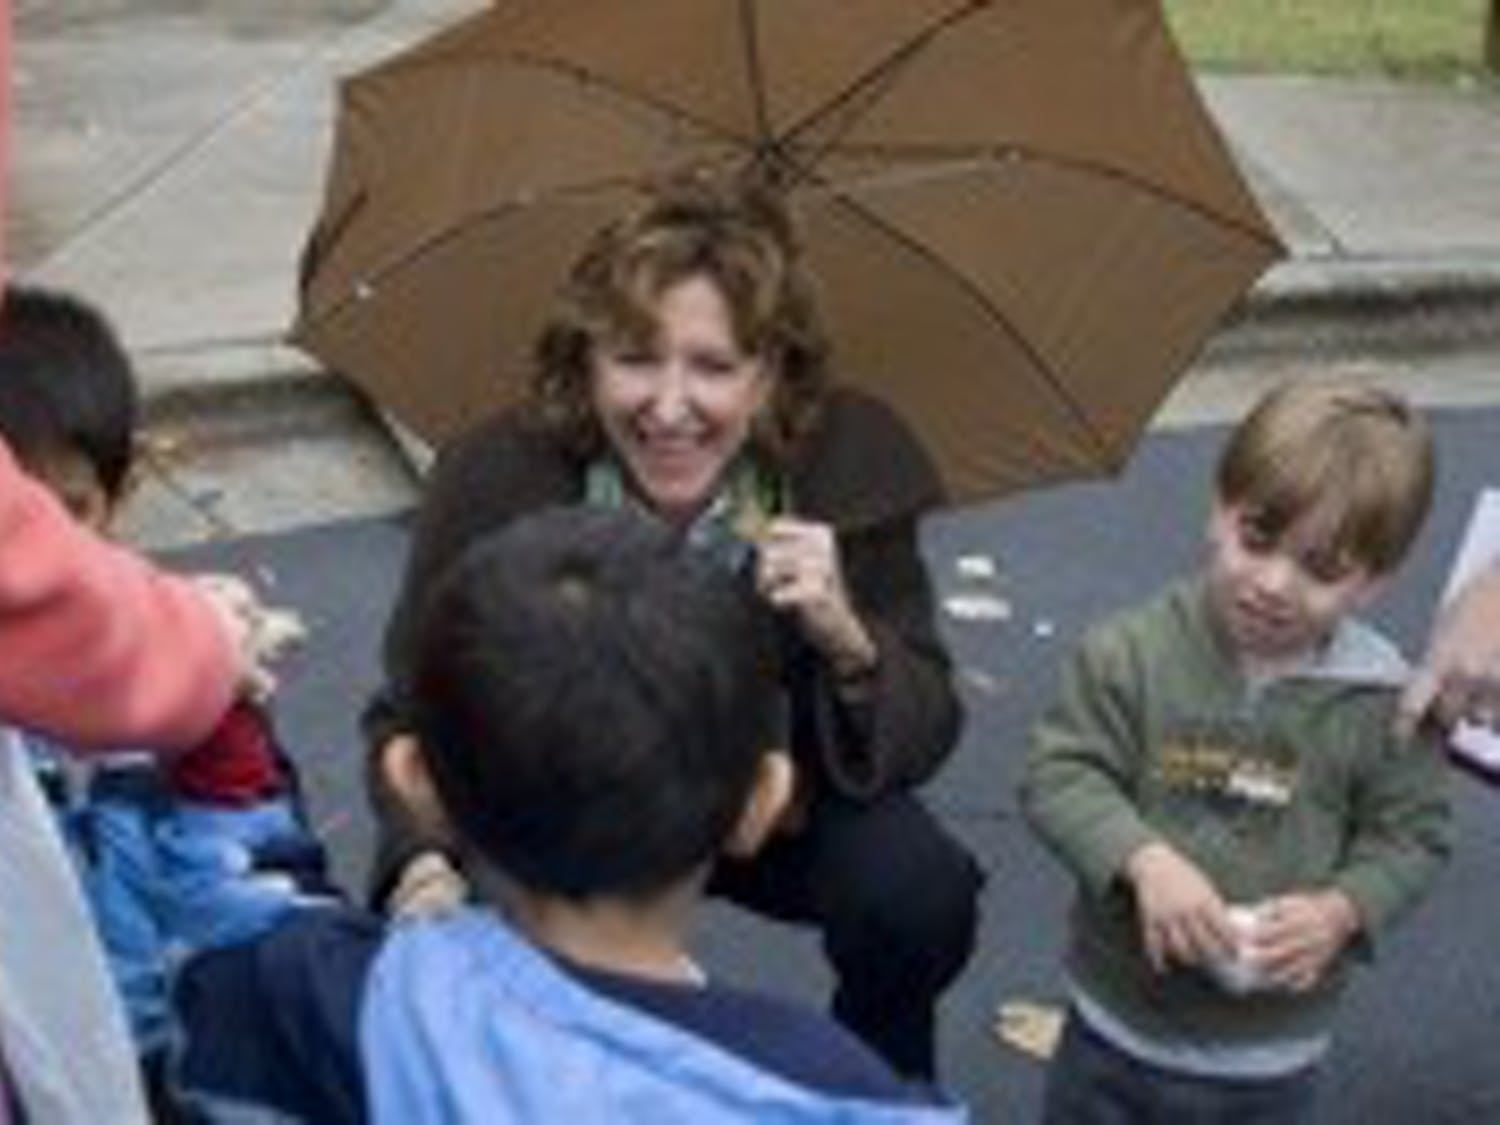 Outside the polls: Democrat N.C. Sen. Kay Hagan of Guilford County greets a family at the St. James United Methodist Church polling place in Raleigh as she travels around the state to talk to voters on Election Day. The U.S. Senator-elect later celebrated her victory over incumbent Republican Elizabeth Dole at a rally in Greensboro Coliseum.